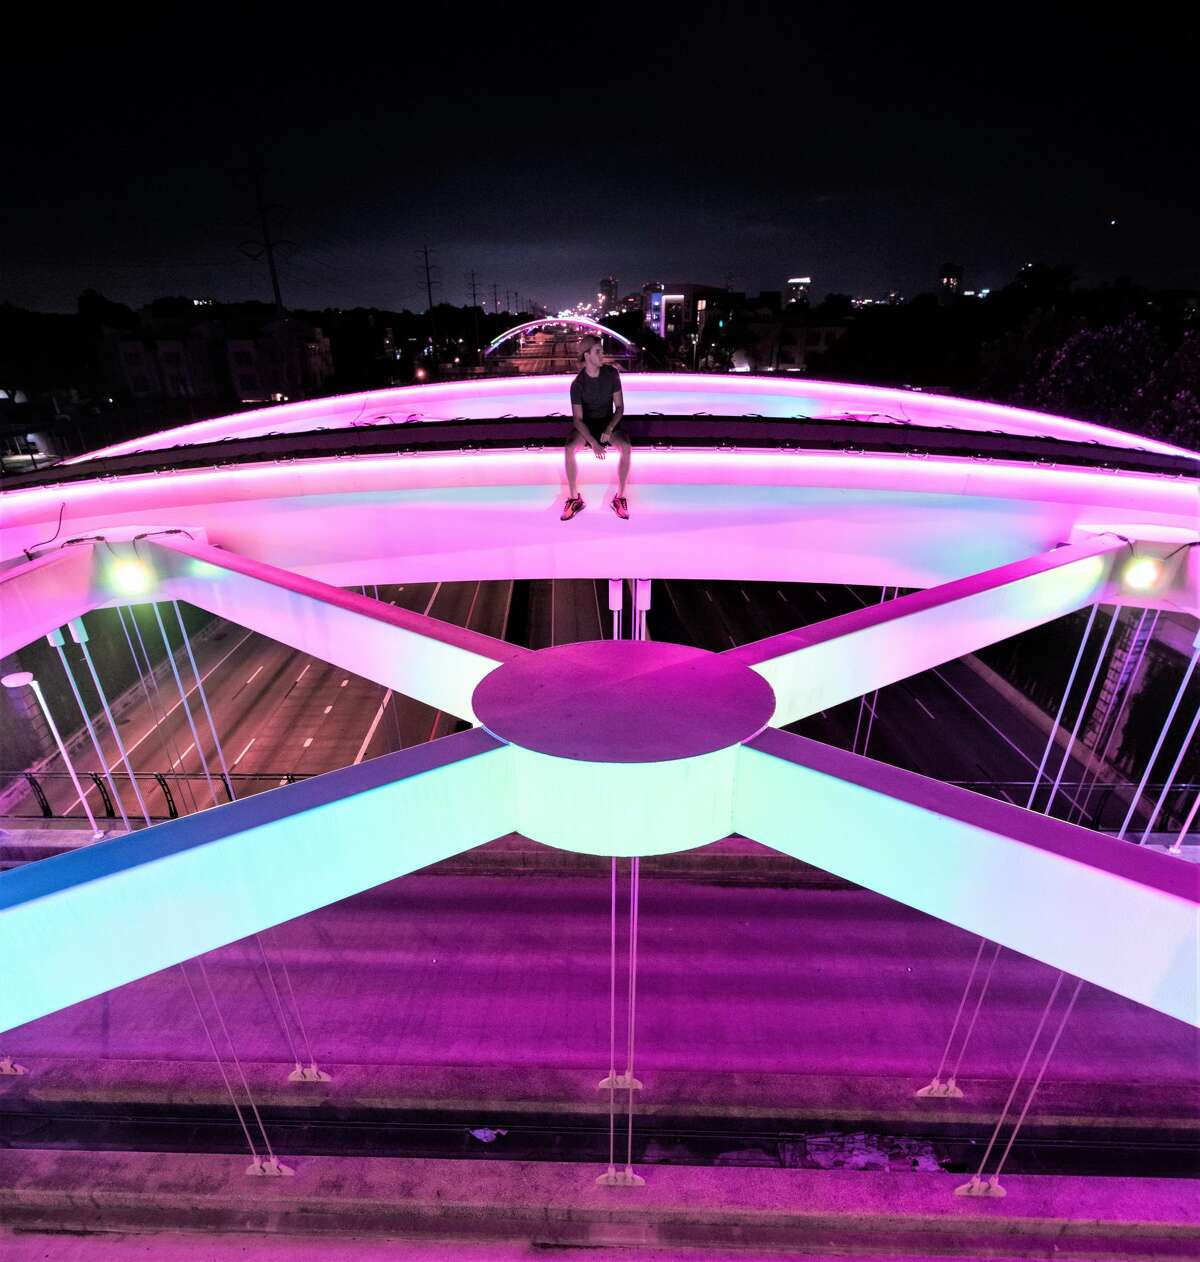 PHOTOS: Two Houston photographers scaled the Montrose bridge, one of a series of illuminated bridges over the Southwest Freeway, capturing jaw-dropping photos and video. >>> See more of the jaw-dropping images ....